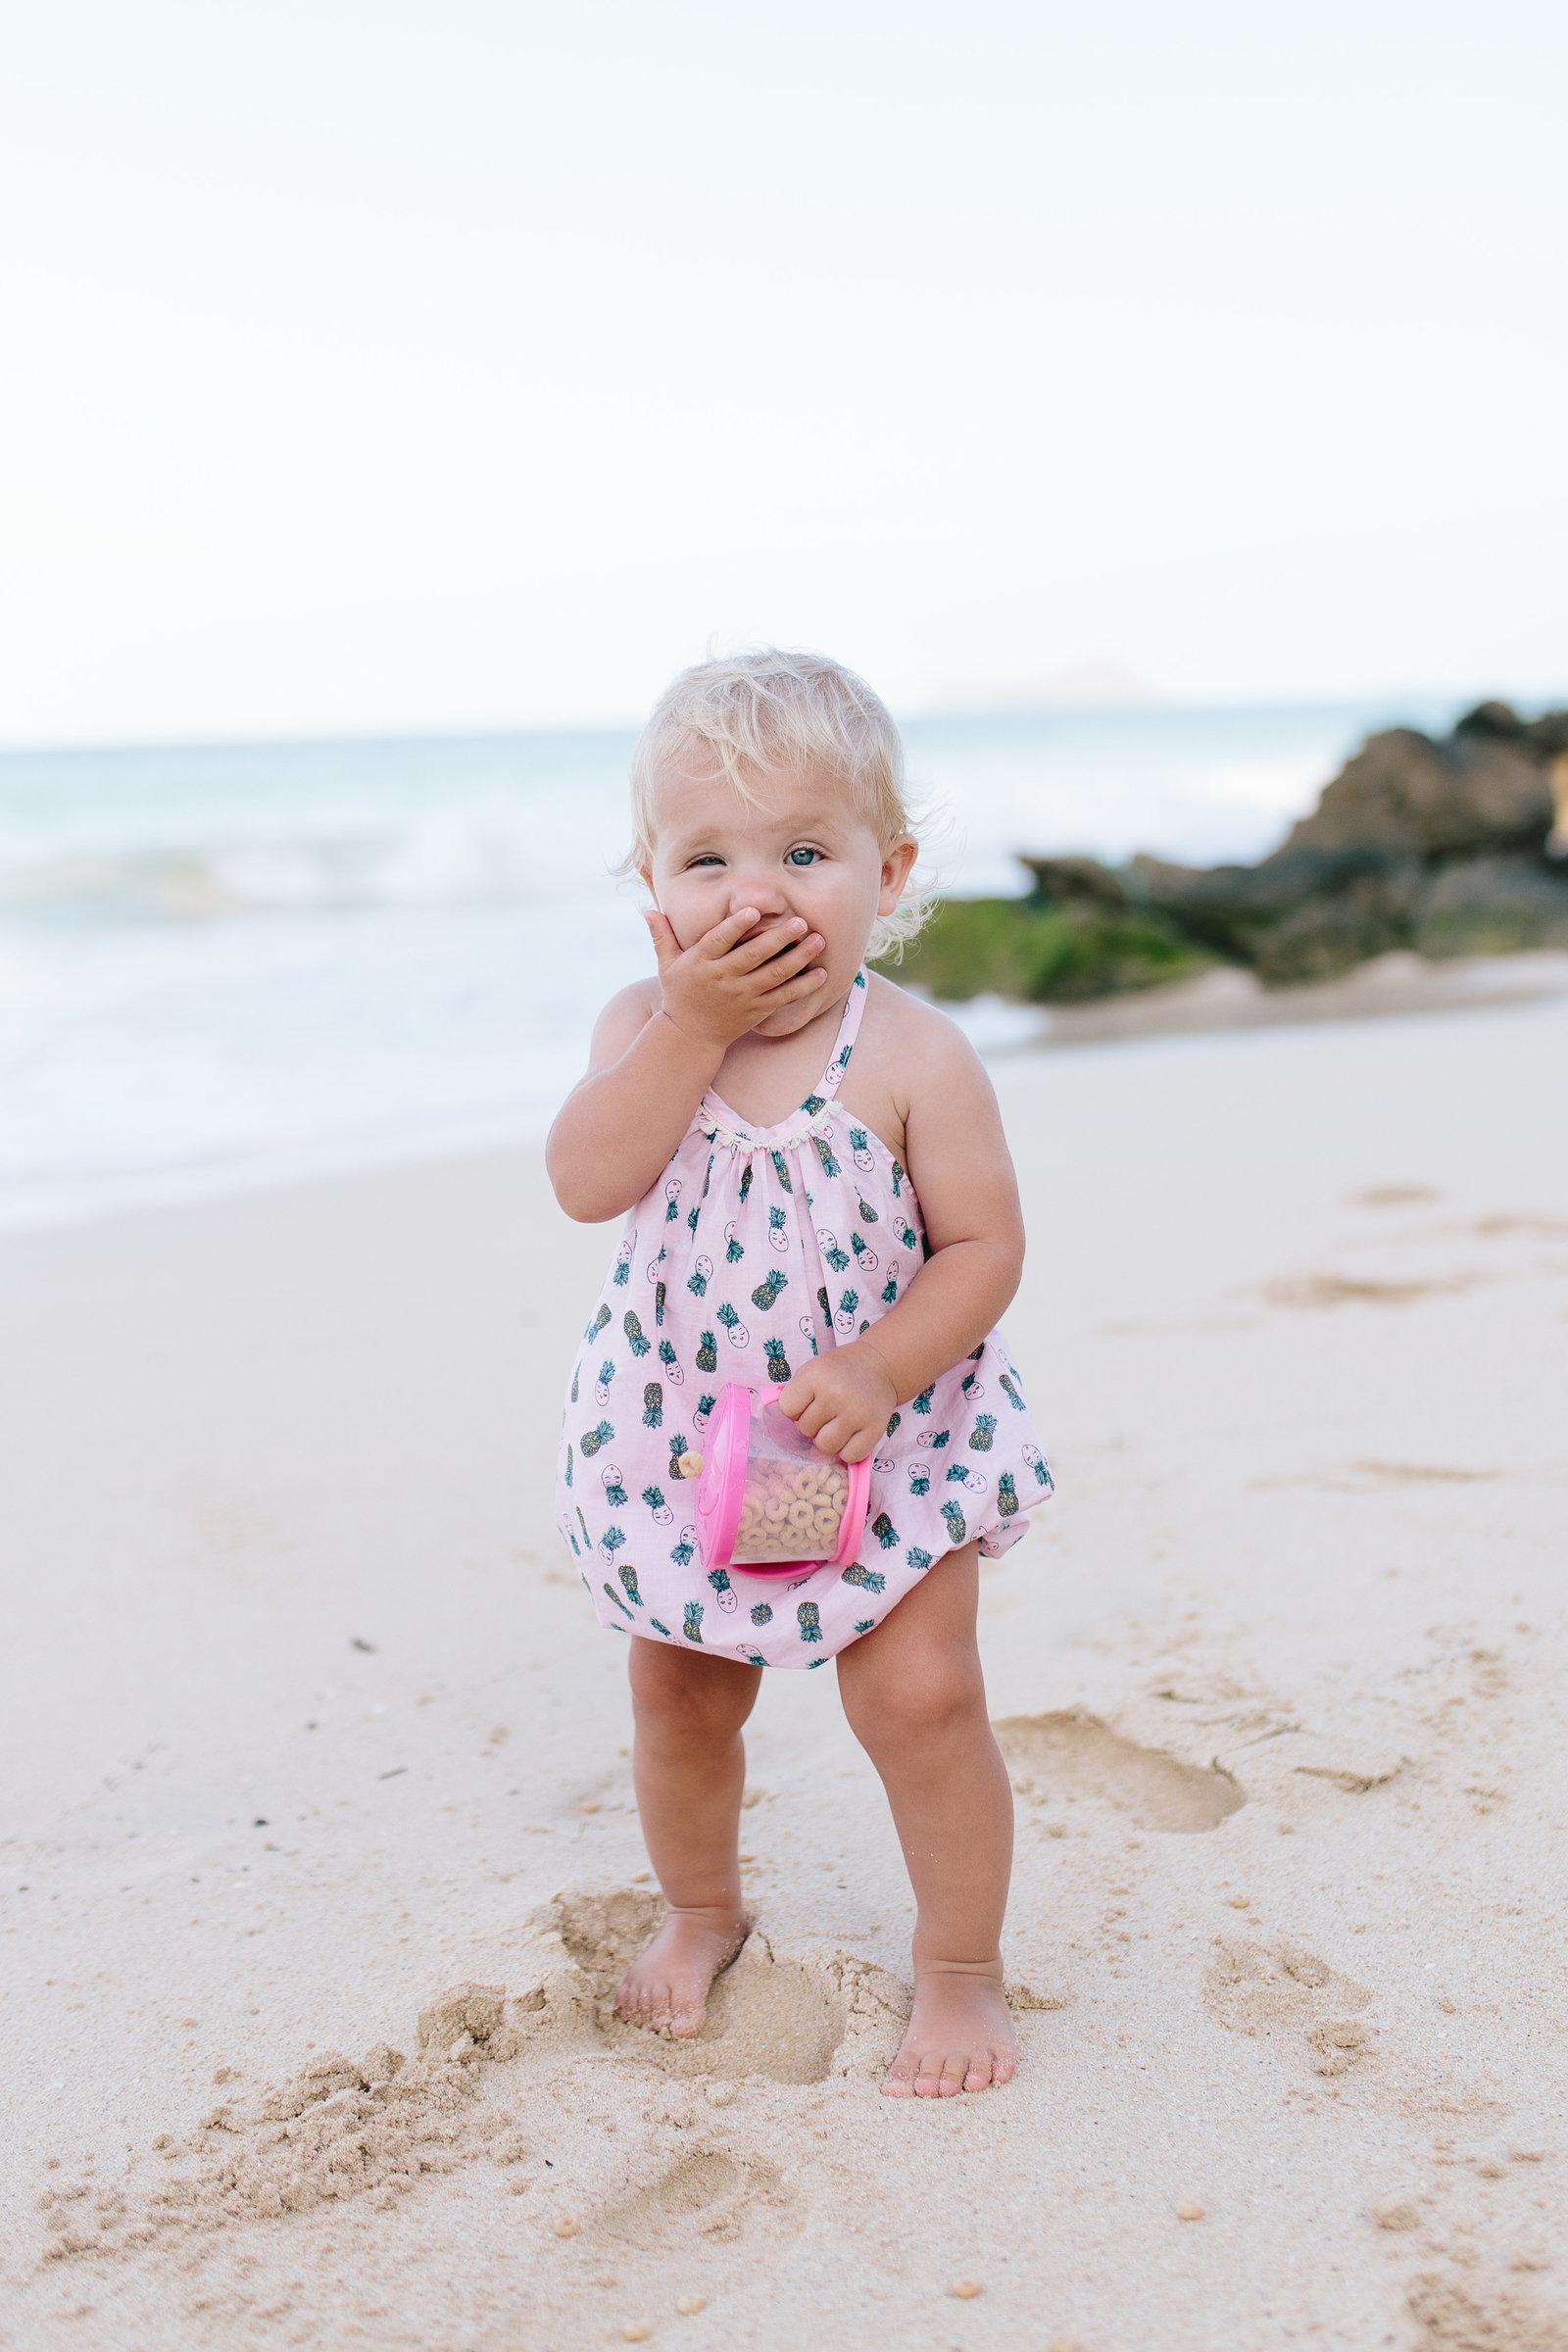 Oahu, Hawaii Lifestyle Photographer - Lifestyle Photography - Brooke Flanagan Photography - Little Girl in Romper on the Beach